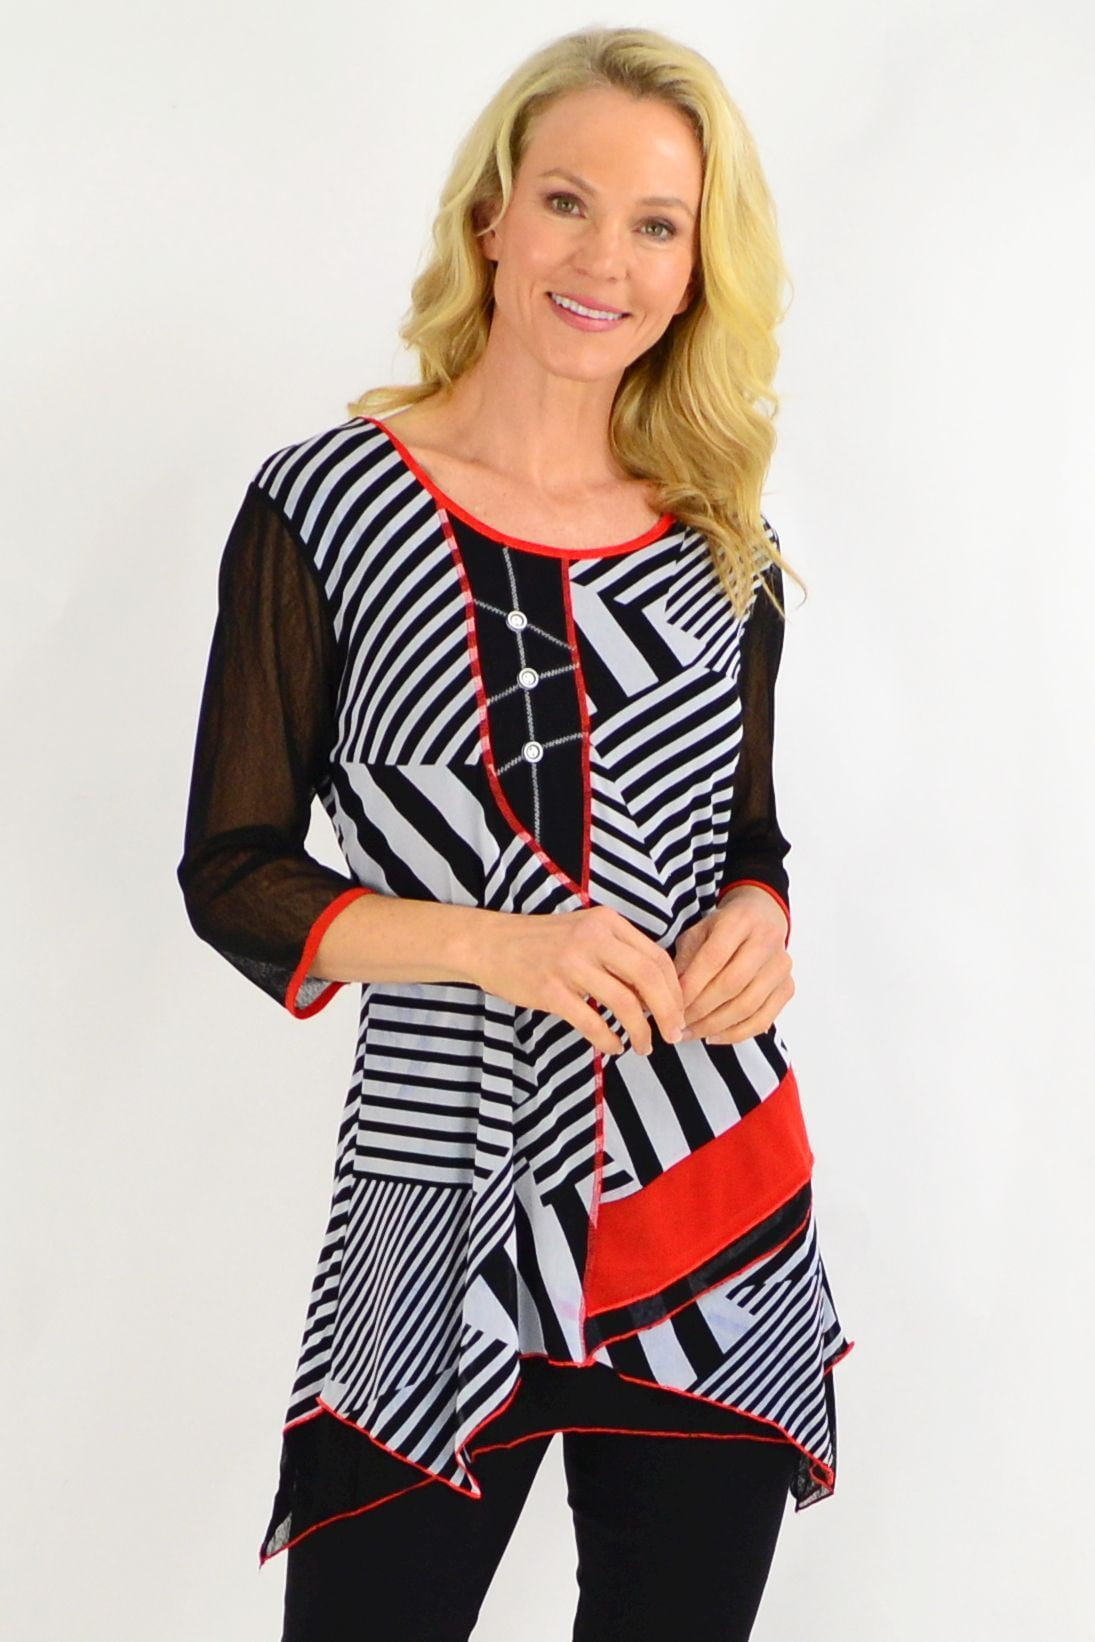 Barbara Black White Stripe Tunic Top | I Love Tunics | Tunic Tops | Tunic | Tunic Dresses  | womens clothing online